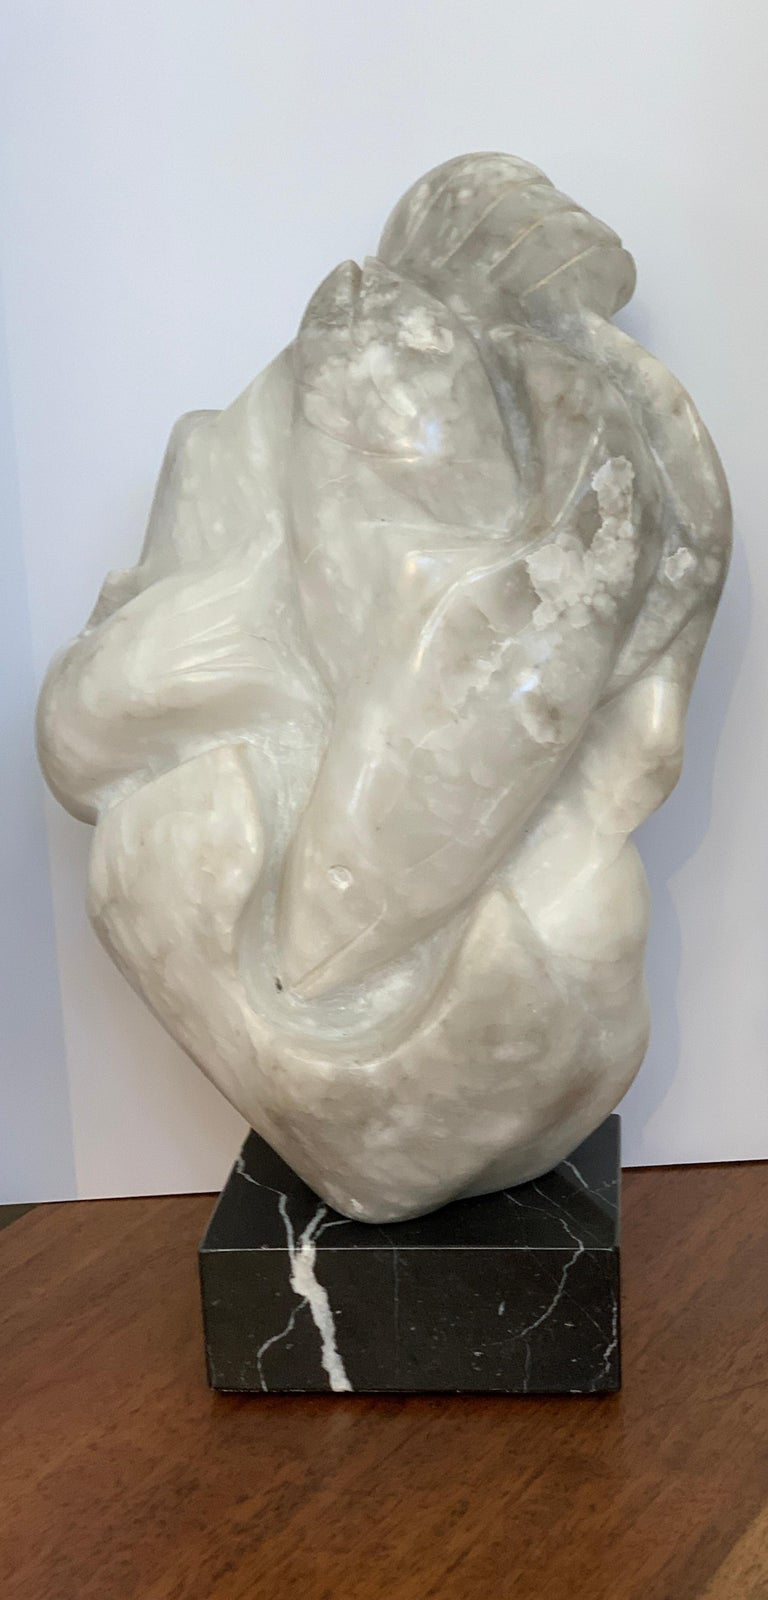 A lovely marble stone sculpture of intertwined salmon, likely an Inuit artist. It is mounted on a rod and black marble base so that it swivels. One corner of the bottom of the black marble base had a chip and has been smoothed. There are some nicks,